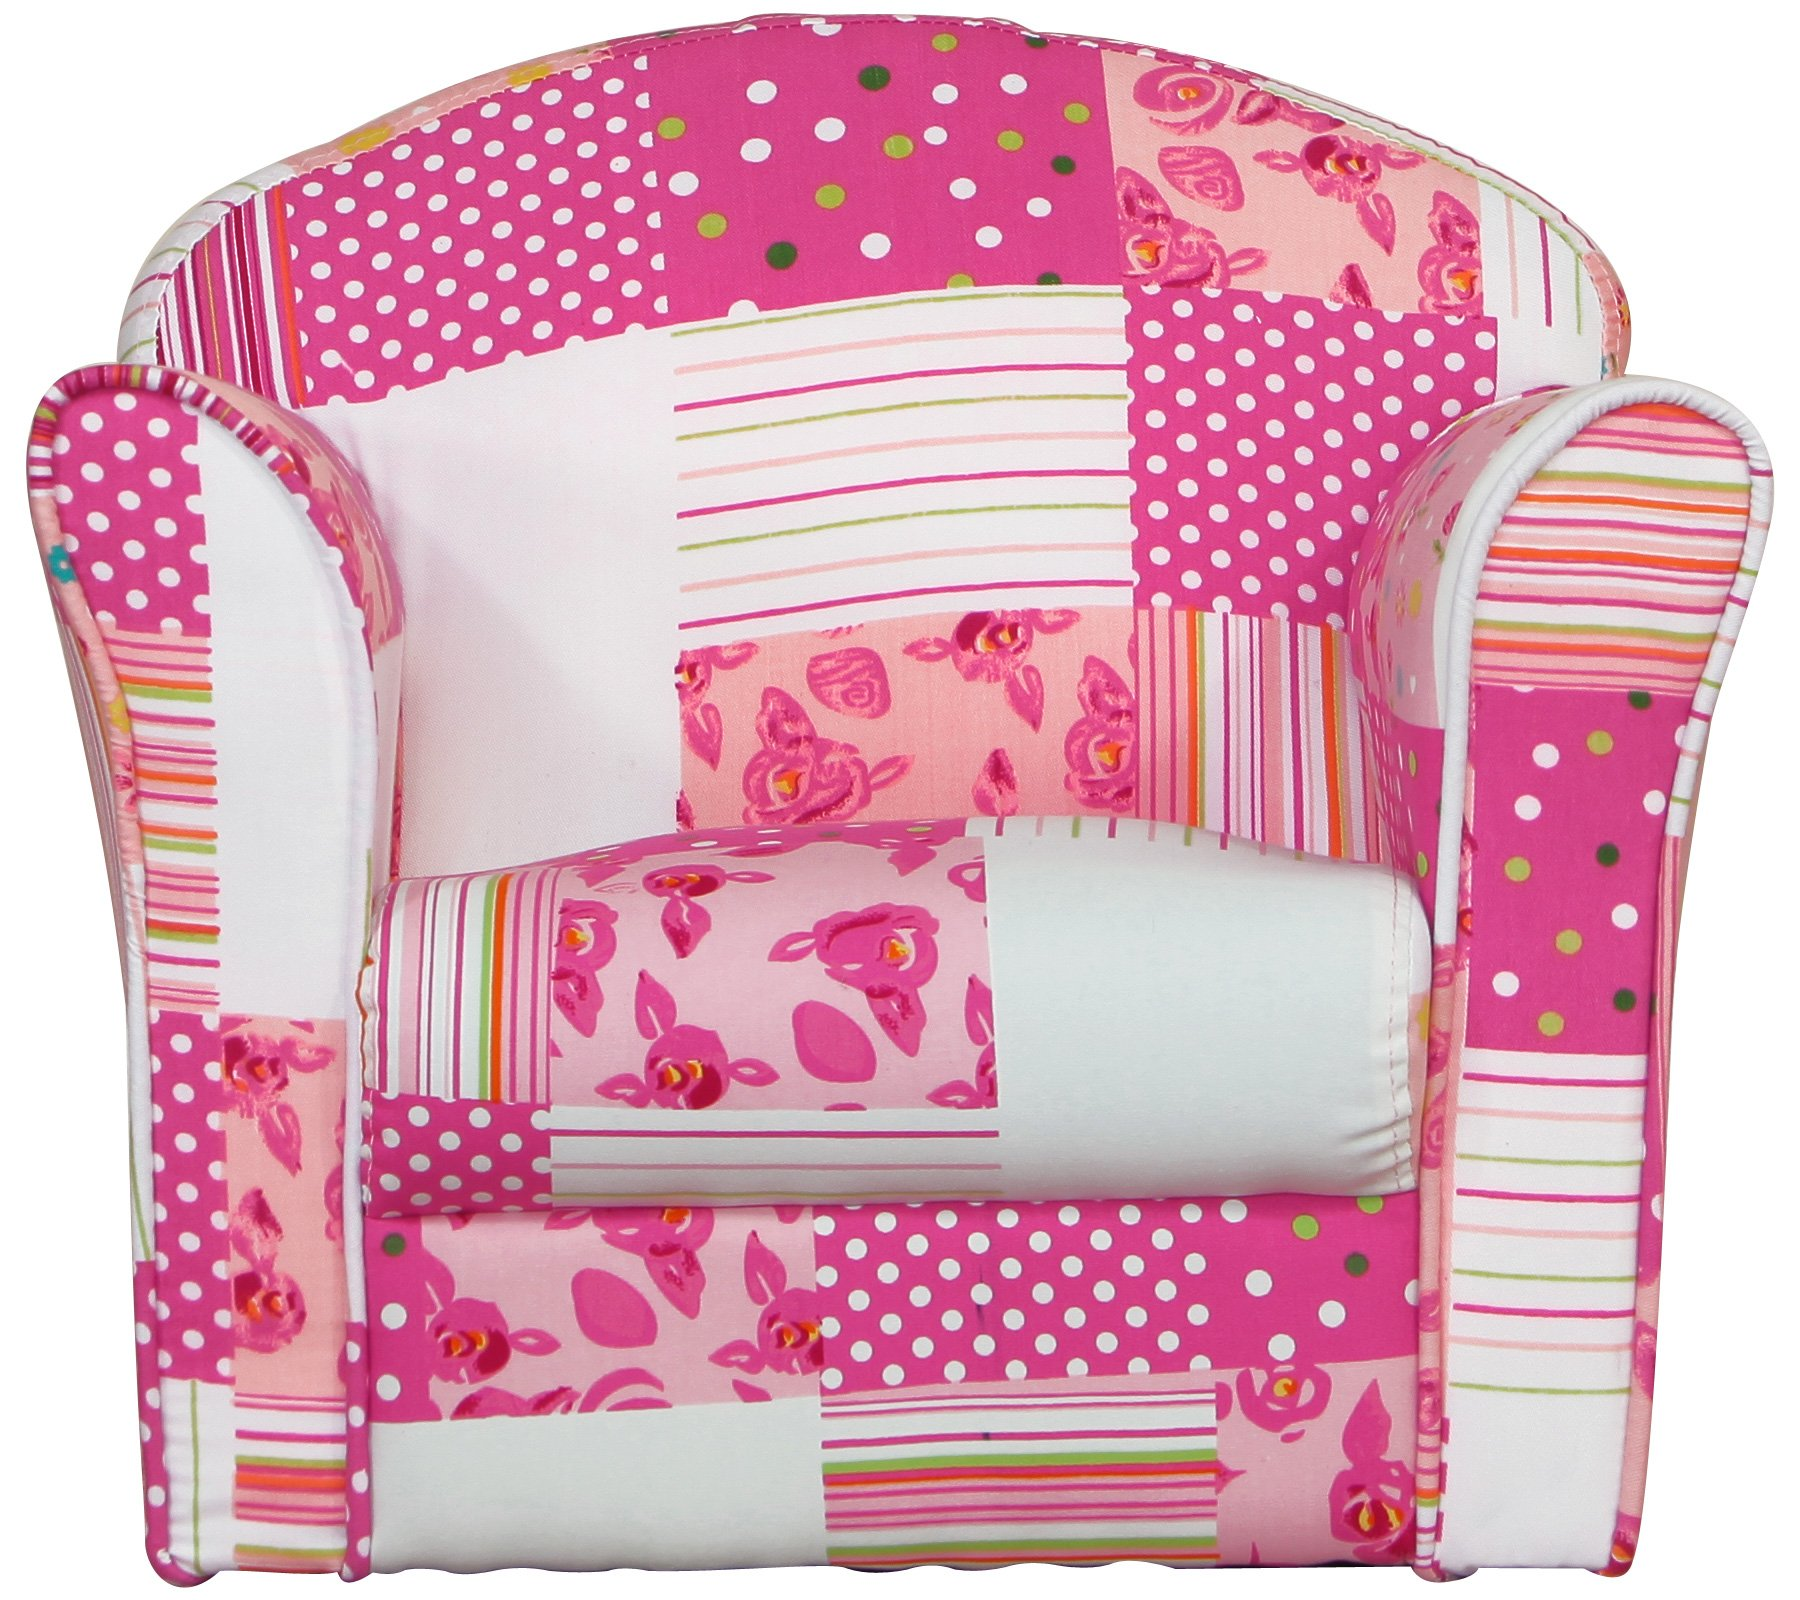 Kidsaw Mini Armchair Patchwork Kidsaw Fully safety tested Strong double stitch Piping finish 3